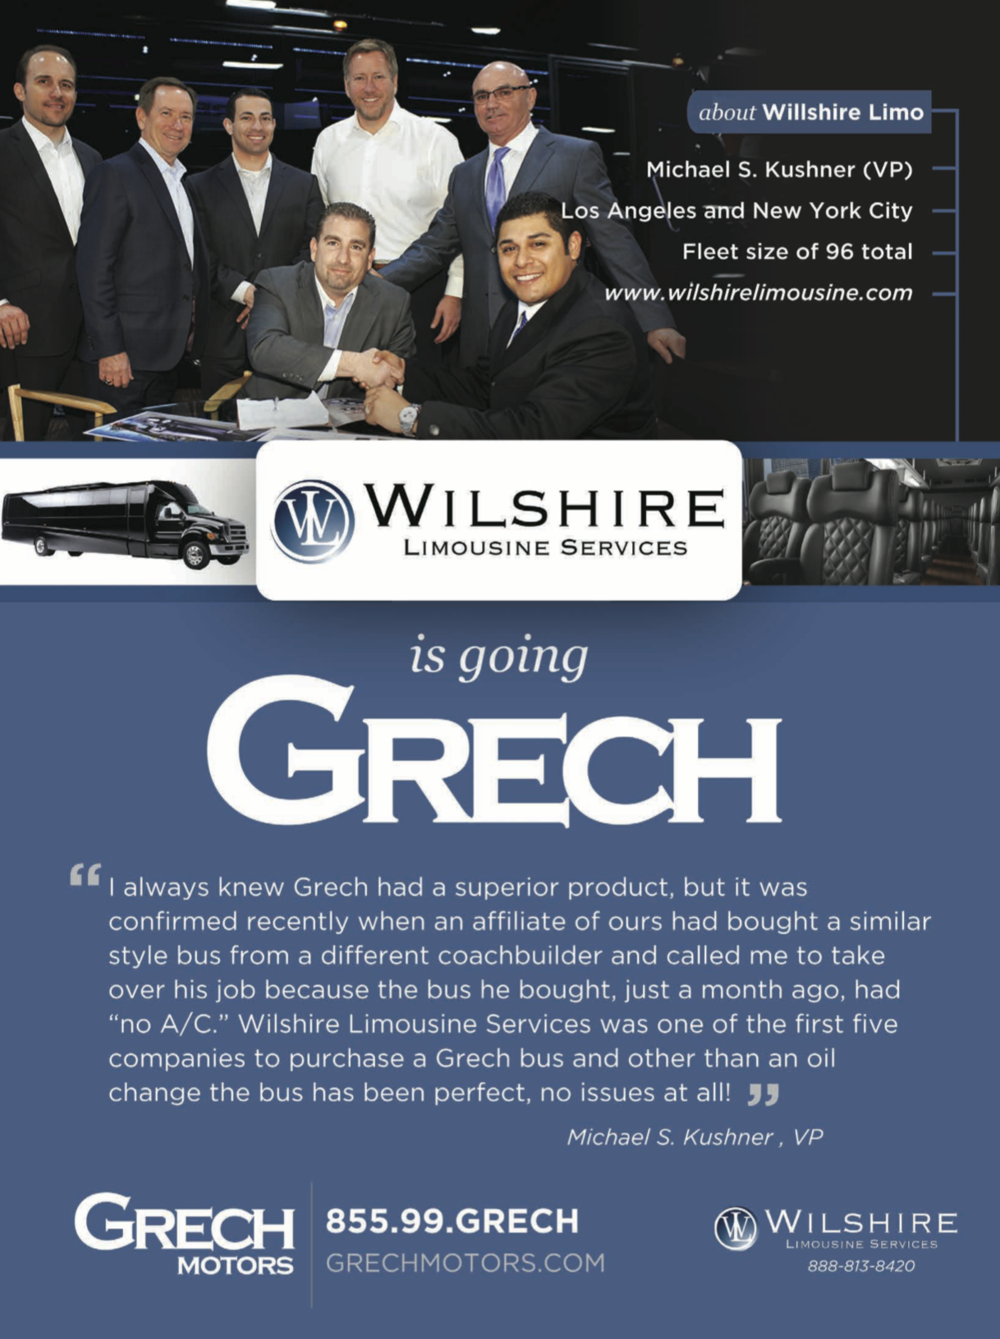 0414-going-grech-wilshire WEBSITE.png